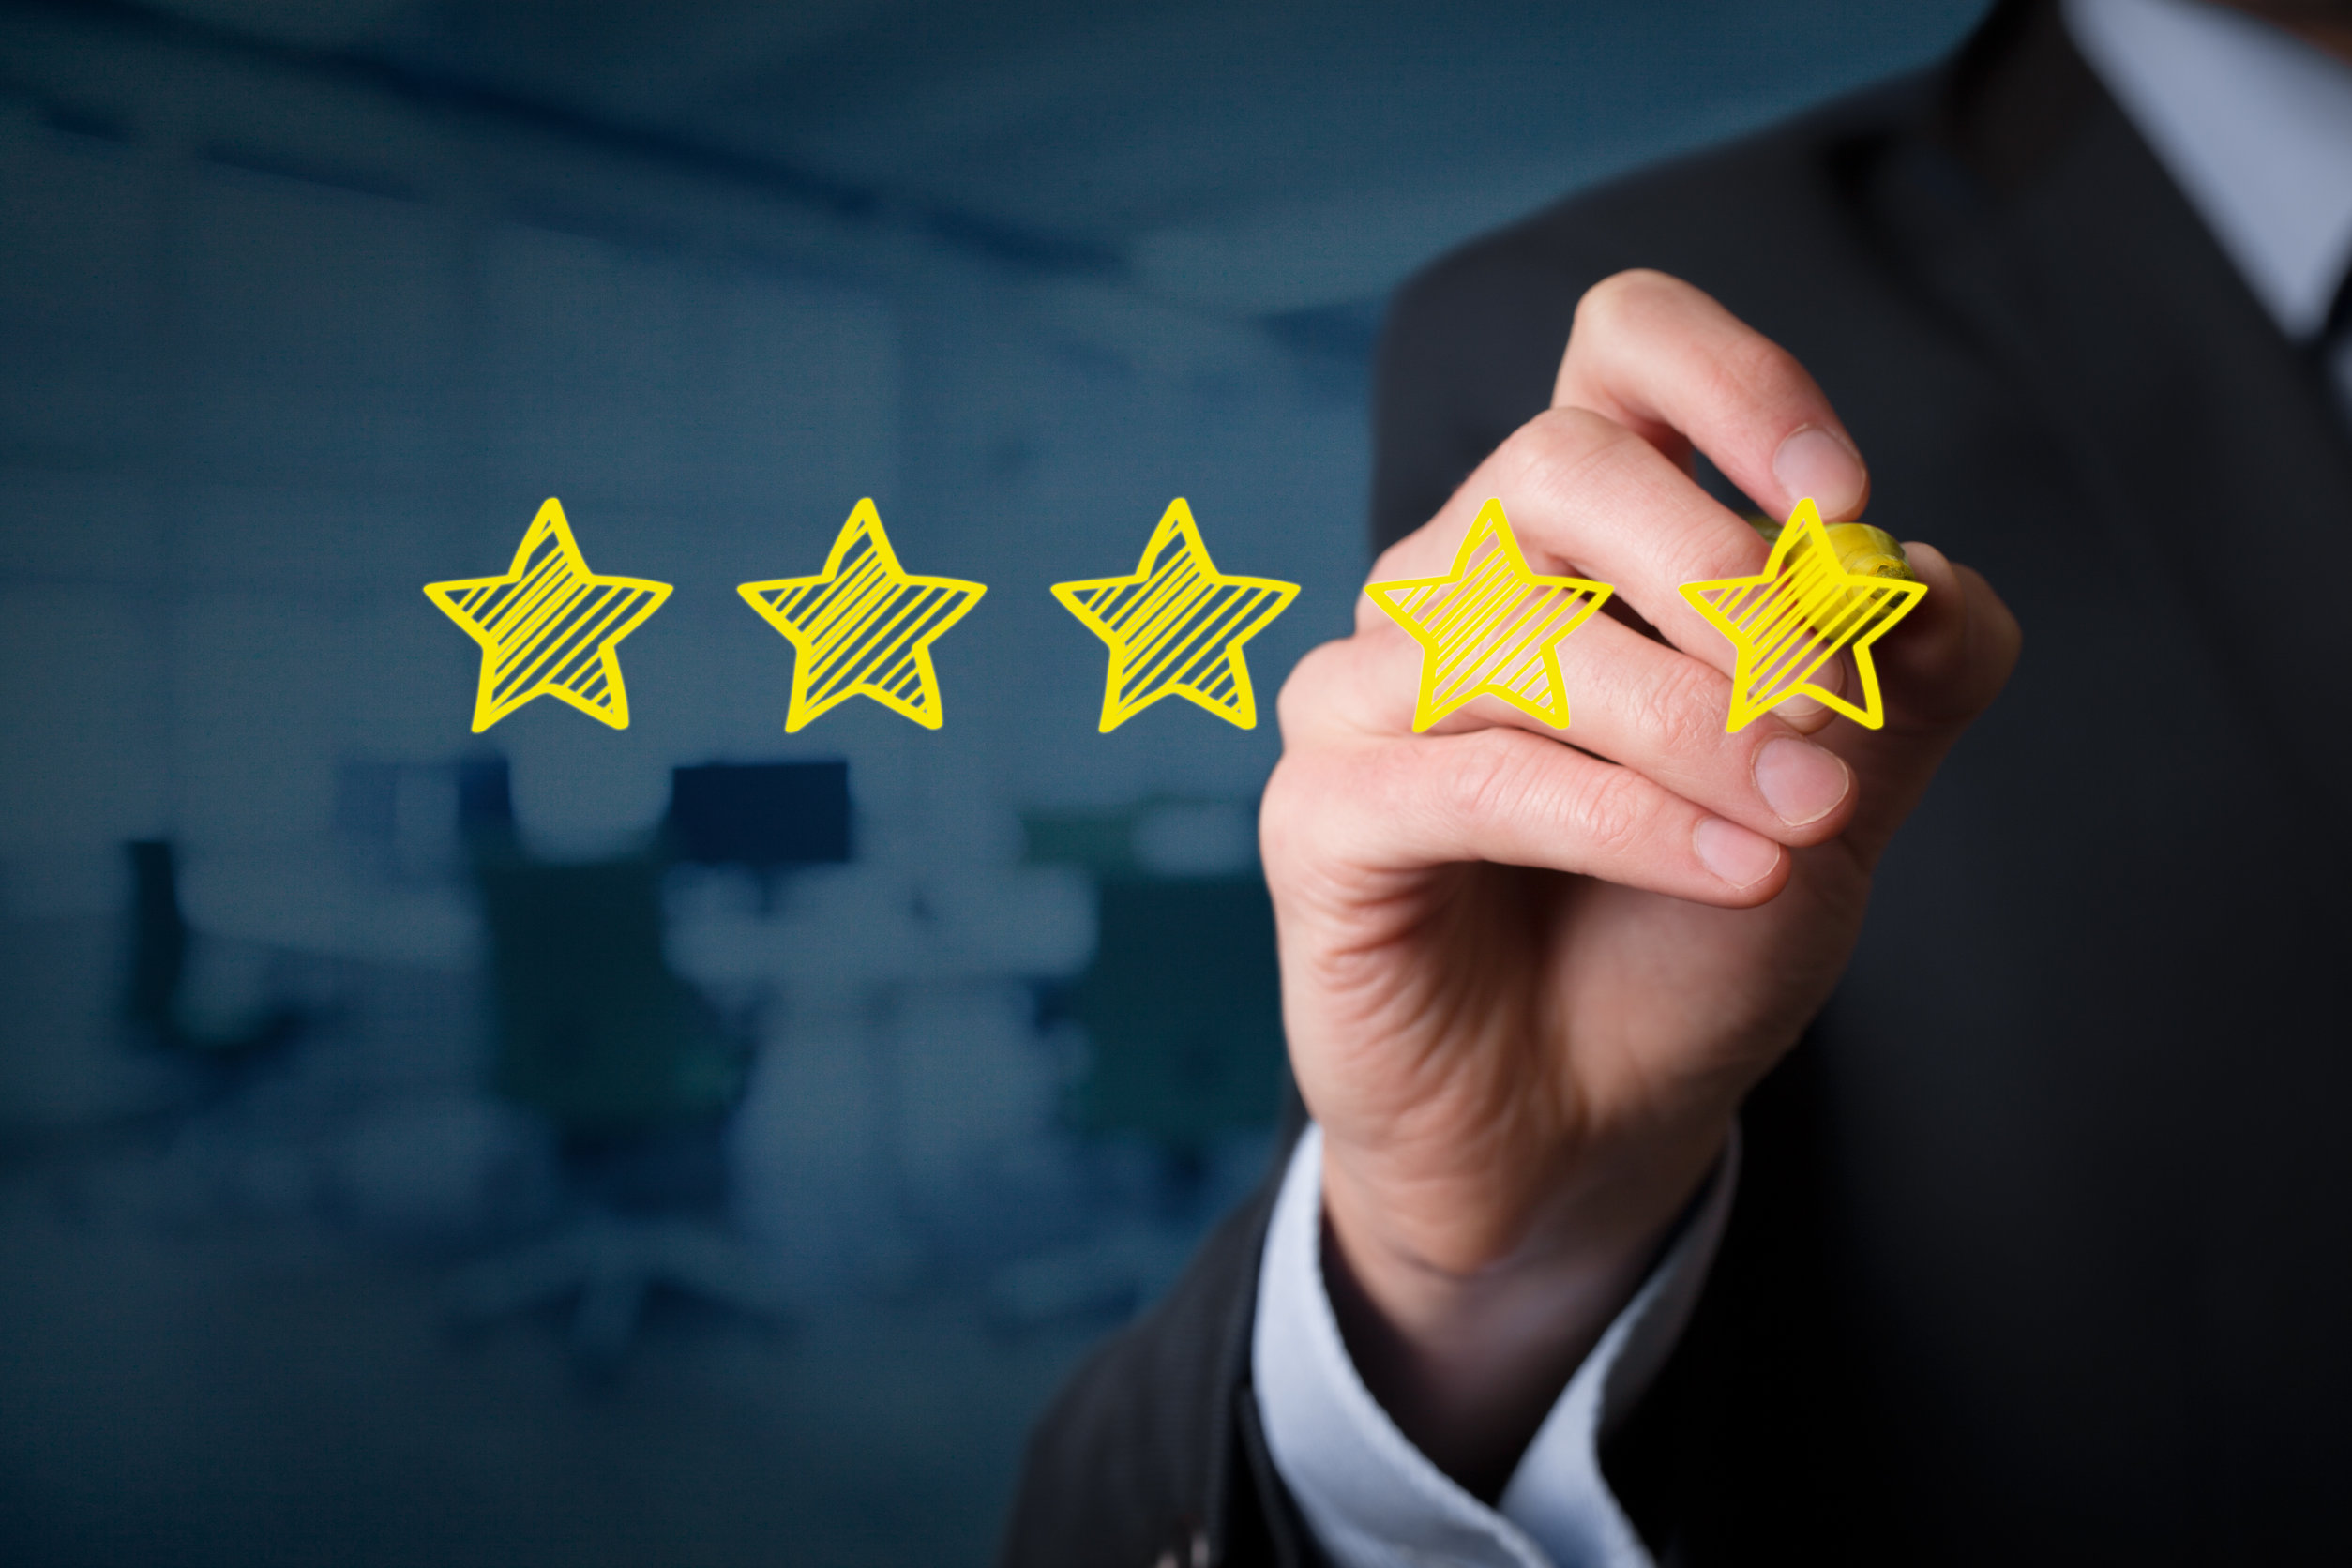 aACE Earns 5-Star Ratings from Satisfied Customers